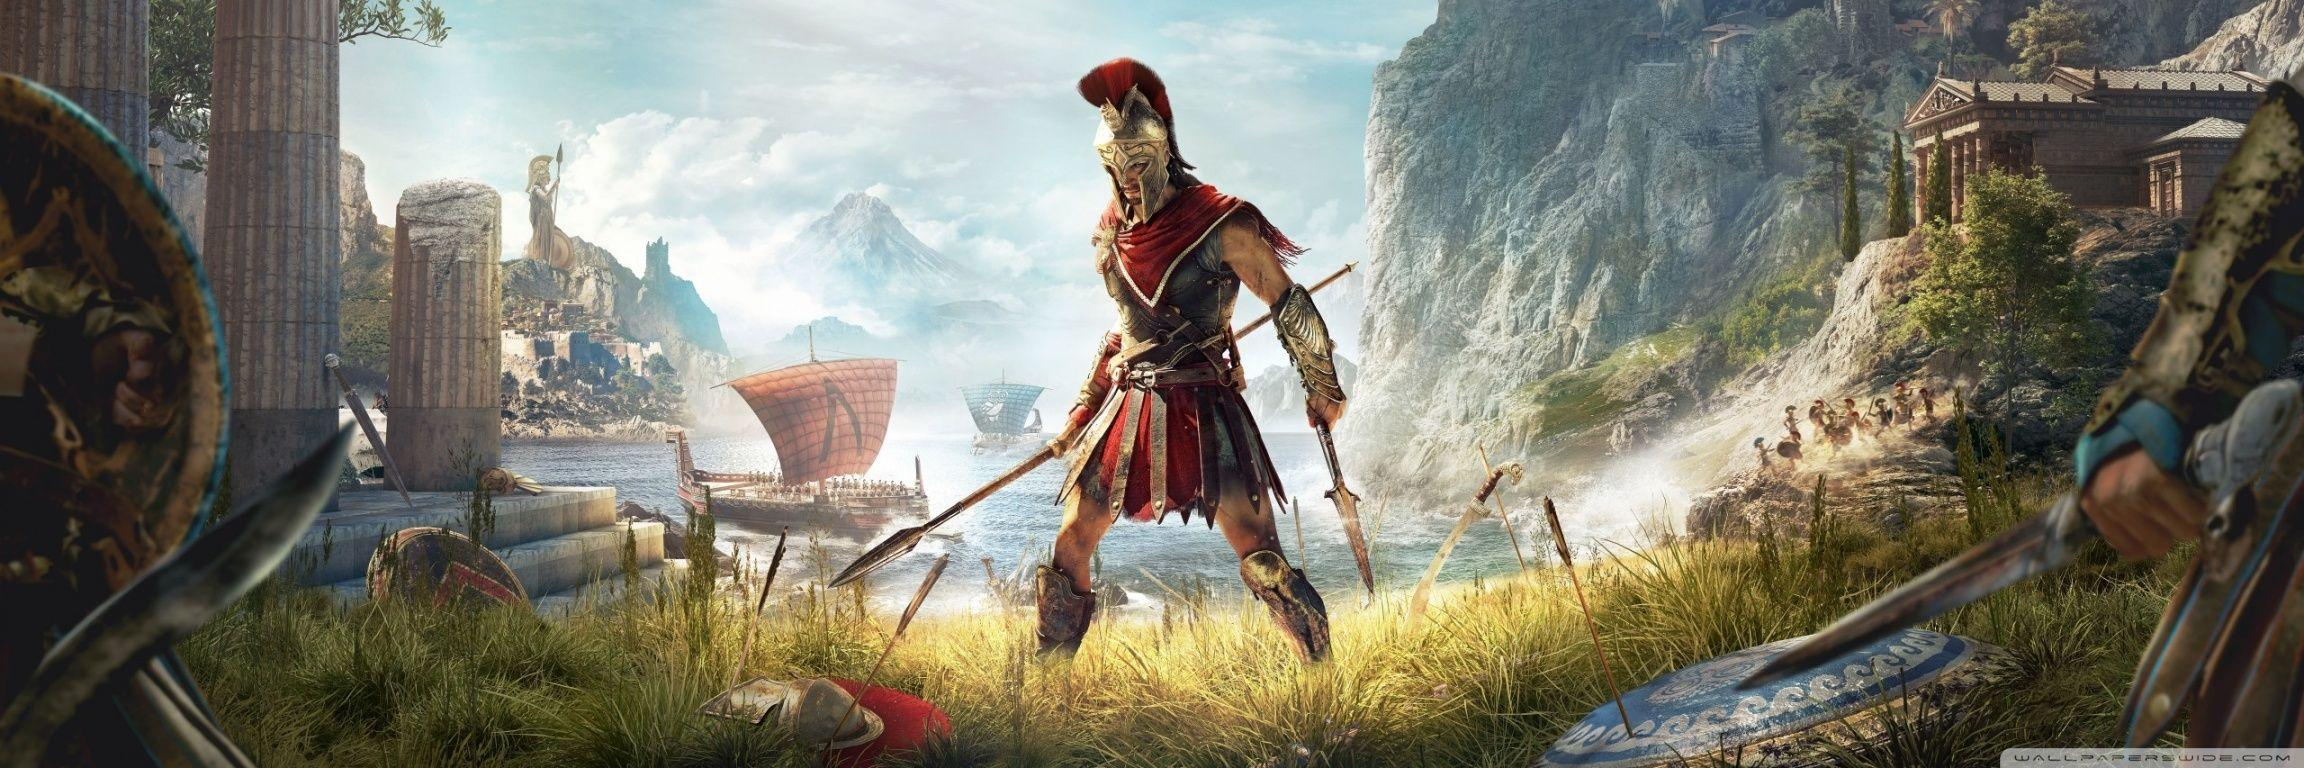 Assassins Creed Wallpaper Hd Assassin S Creed Odyssey Wallpapers Wallpaper Cave